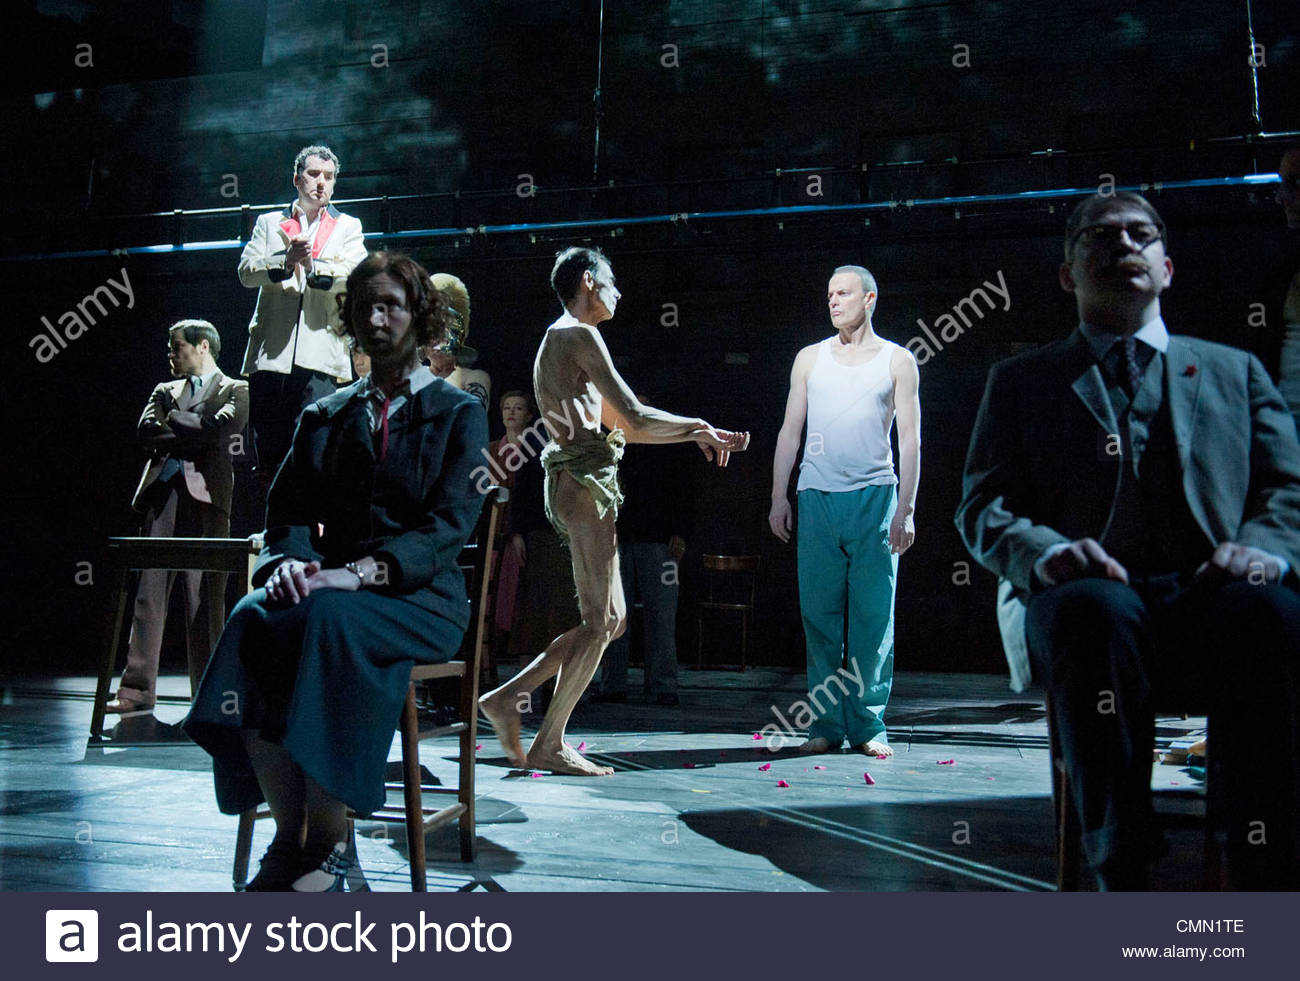 The Master and Margarita by Mikhail Bulgakov. A Complicite Production directed by Simon McBurney. - Stock Image